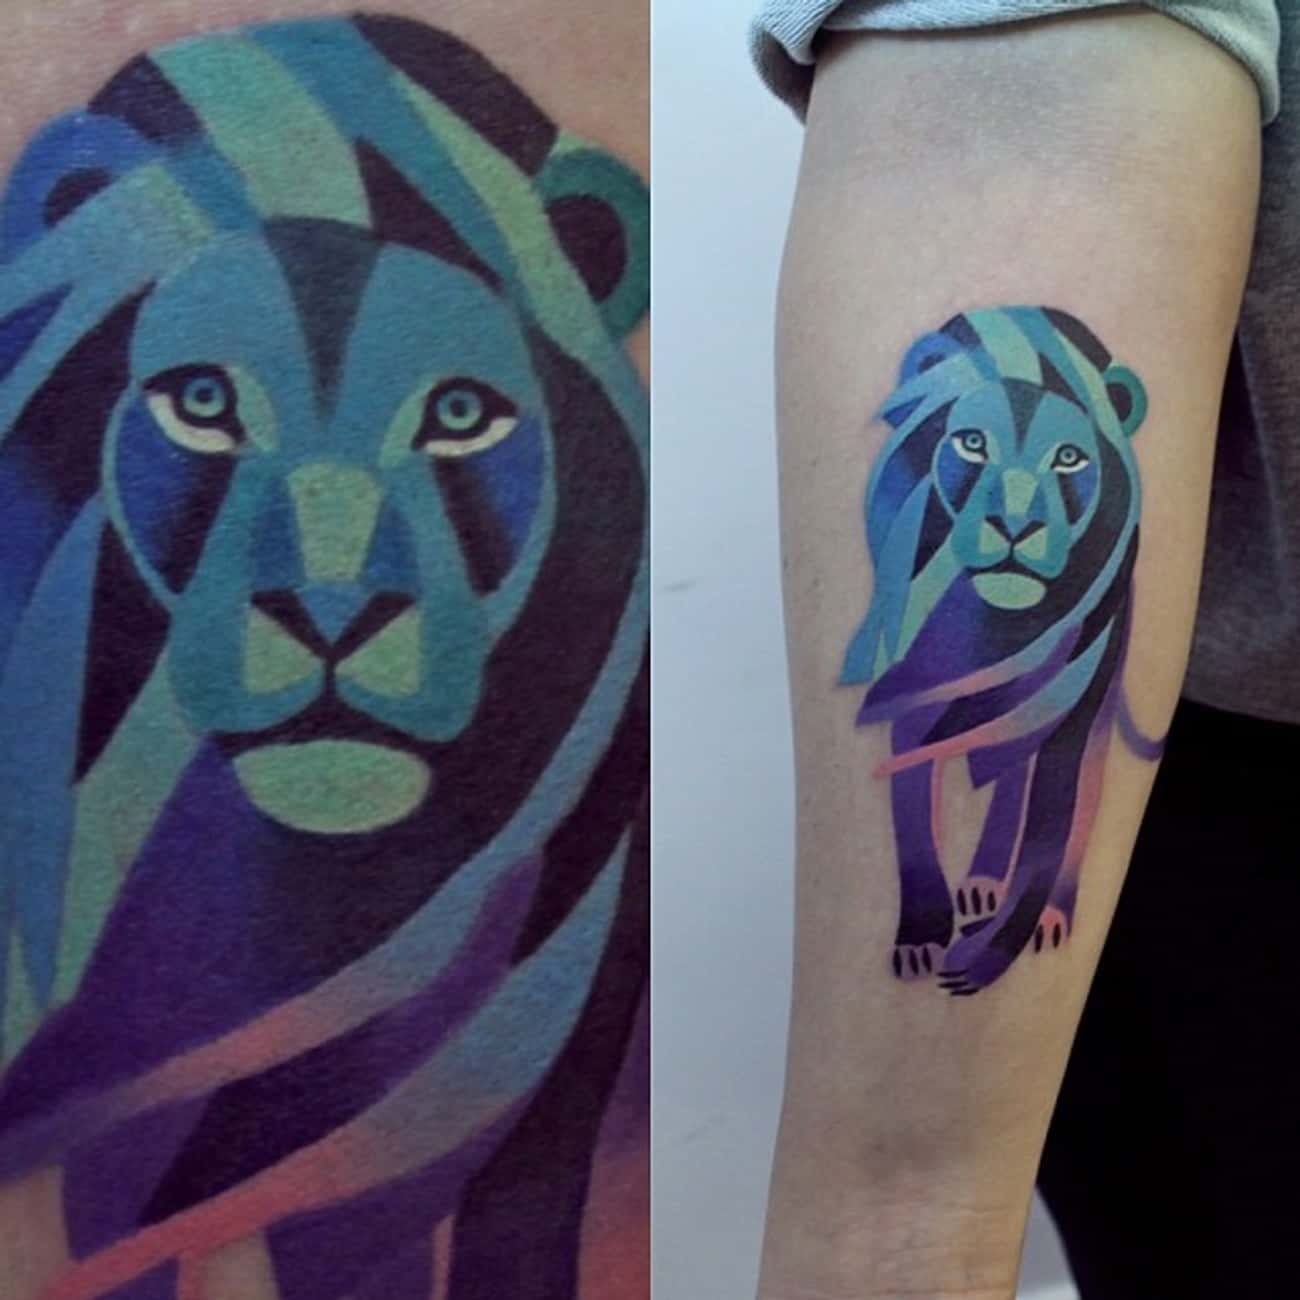 Purple and Pink Lion is listed (or ranked) 2 on the list 30 Amazing Geometric Tattoos